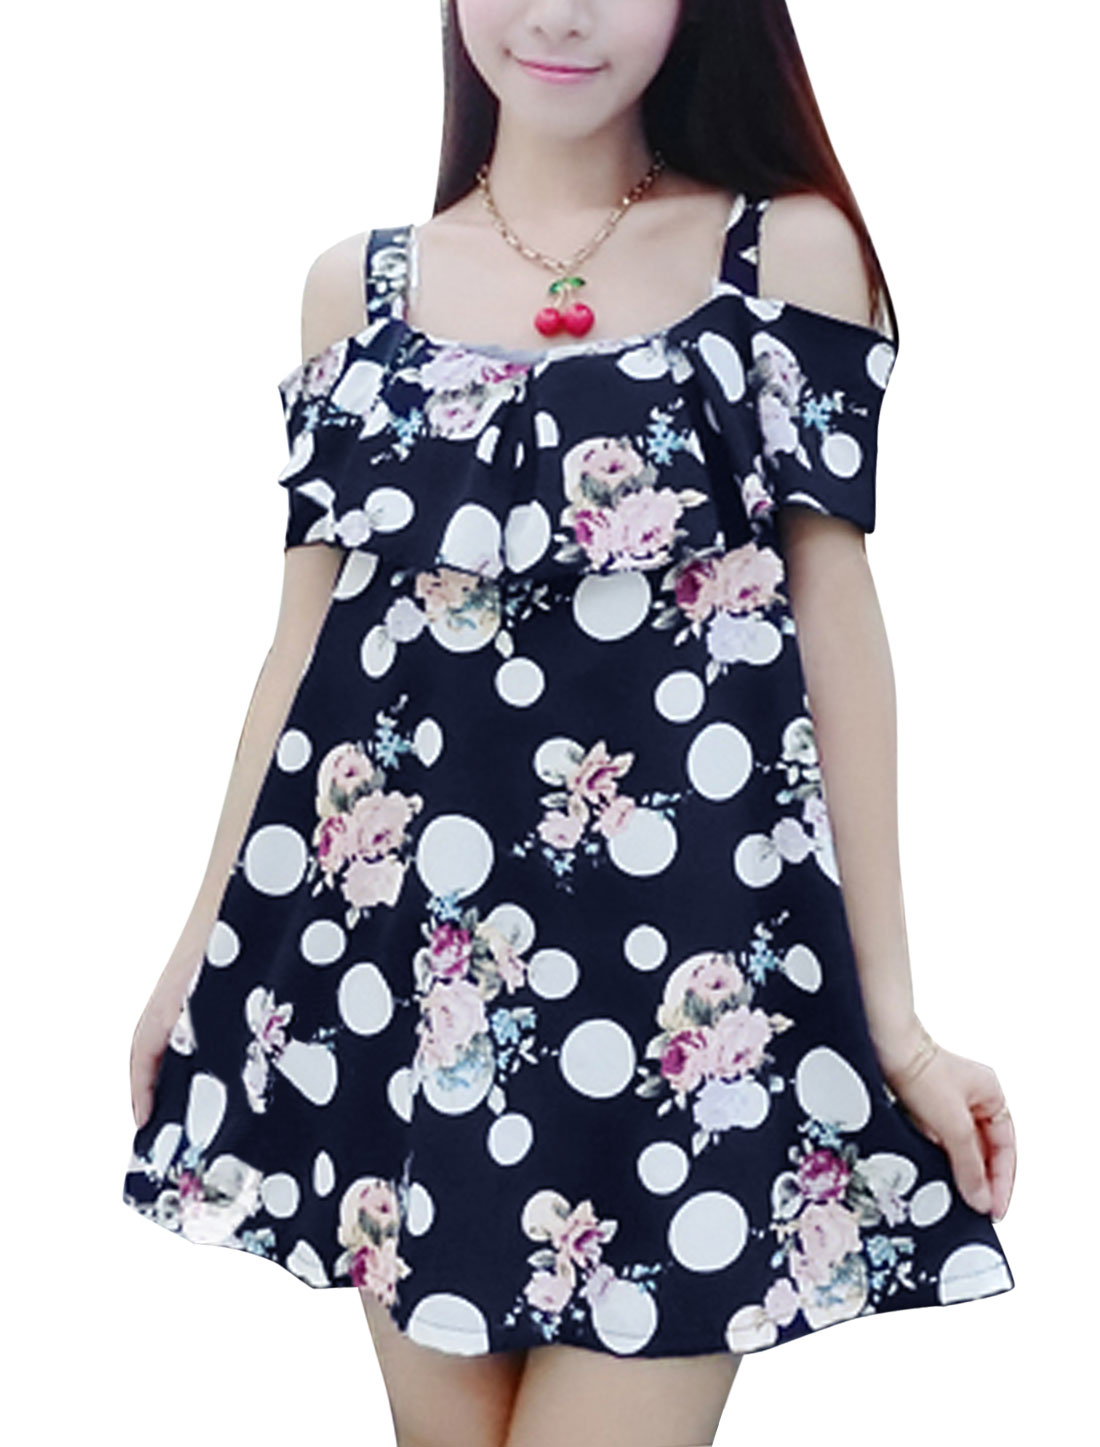 Lady Shoulder Strap Dots Floral Pattern Leisure Tunic Top Navy Blue S